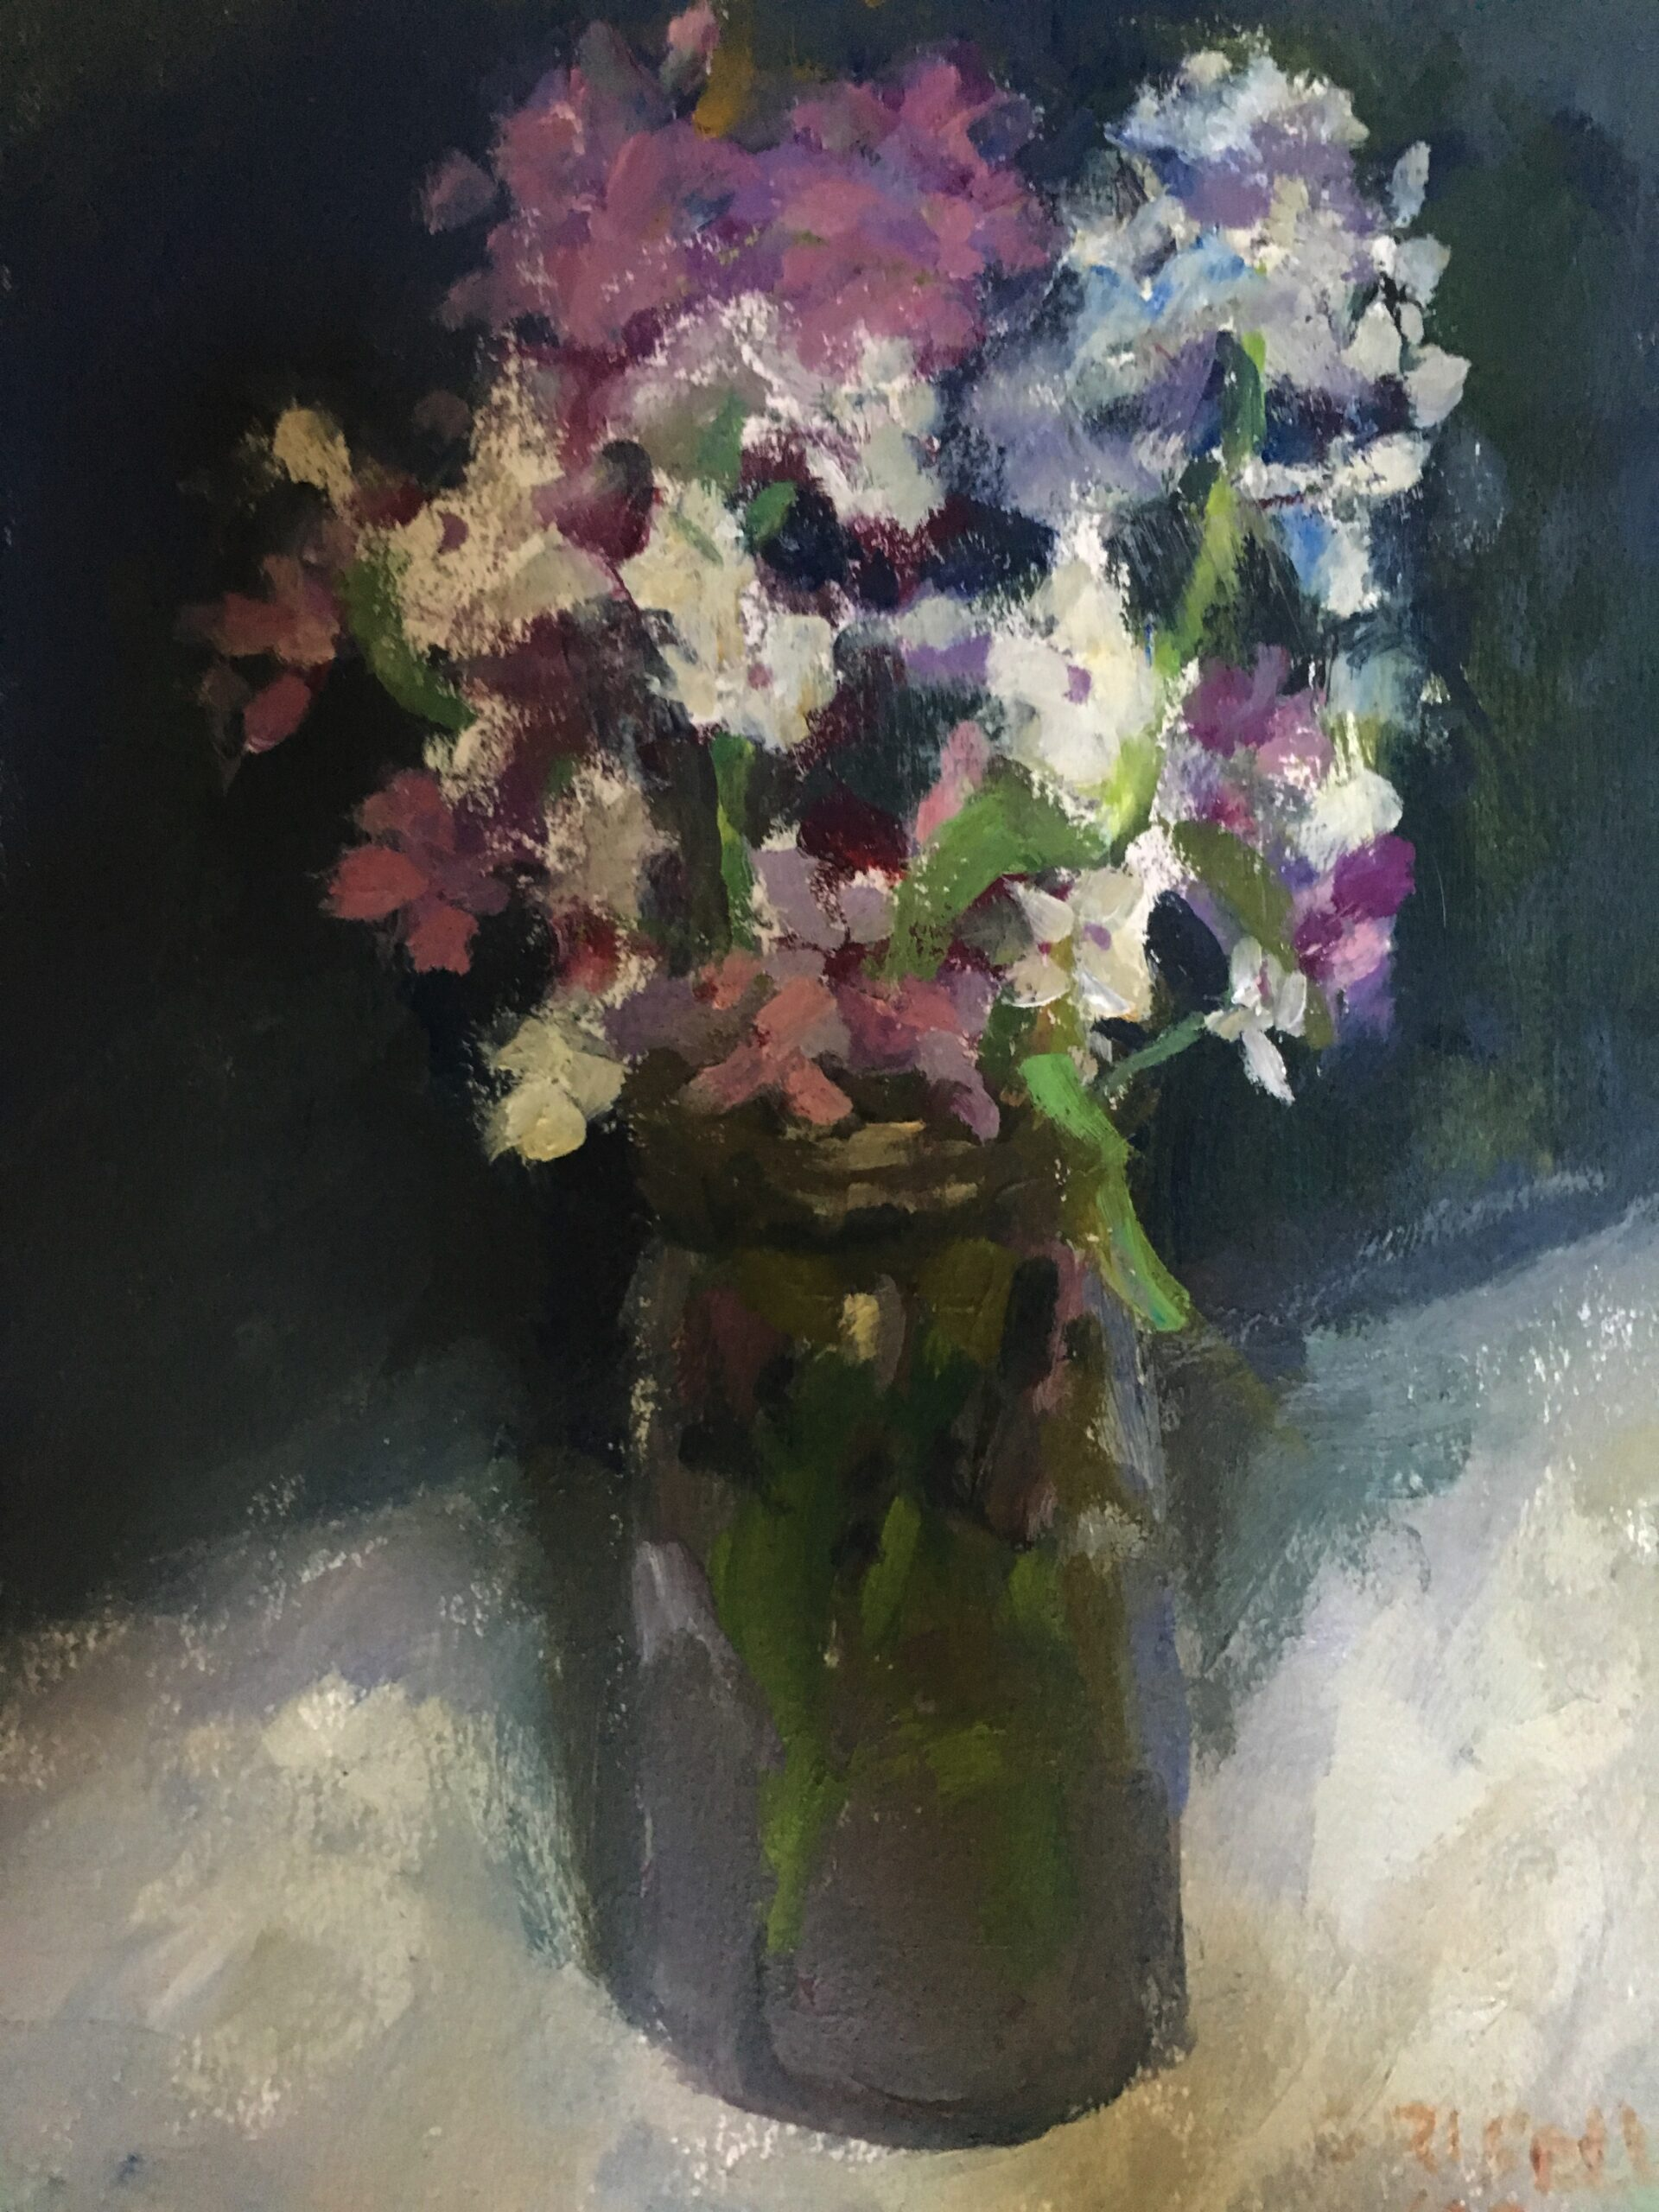 Dames Rocket, Oil on Paper, 12 x 9 Inches, by Susan Grisell, $200